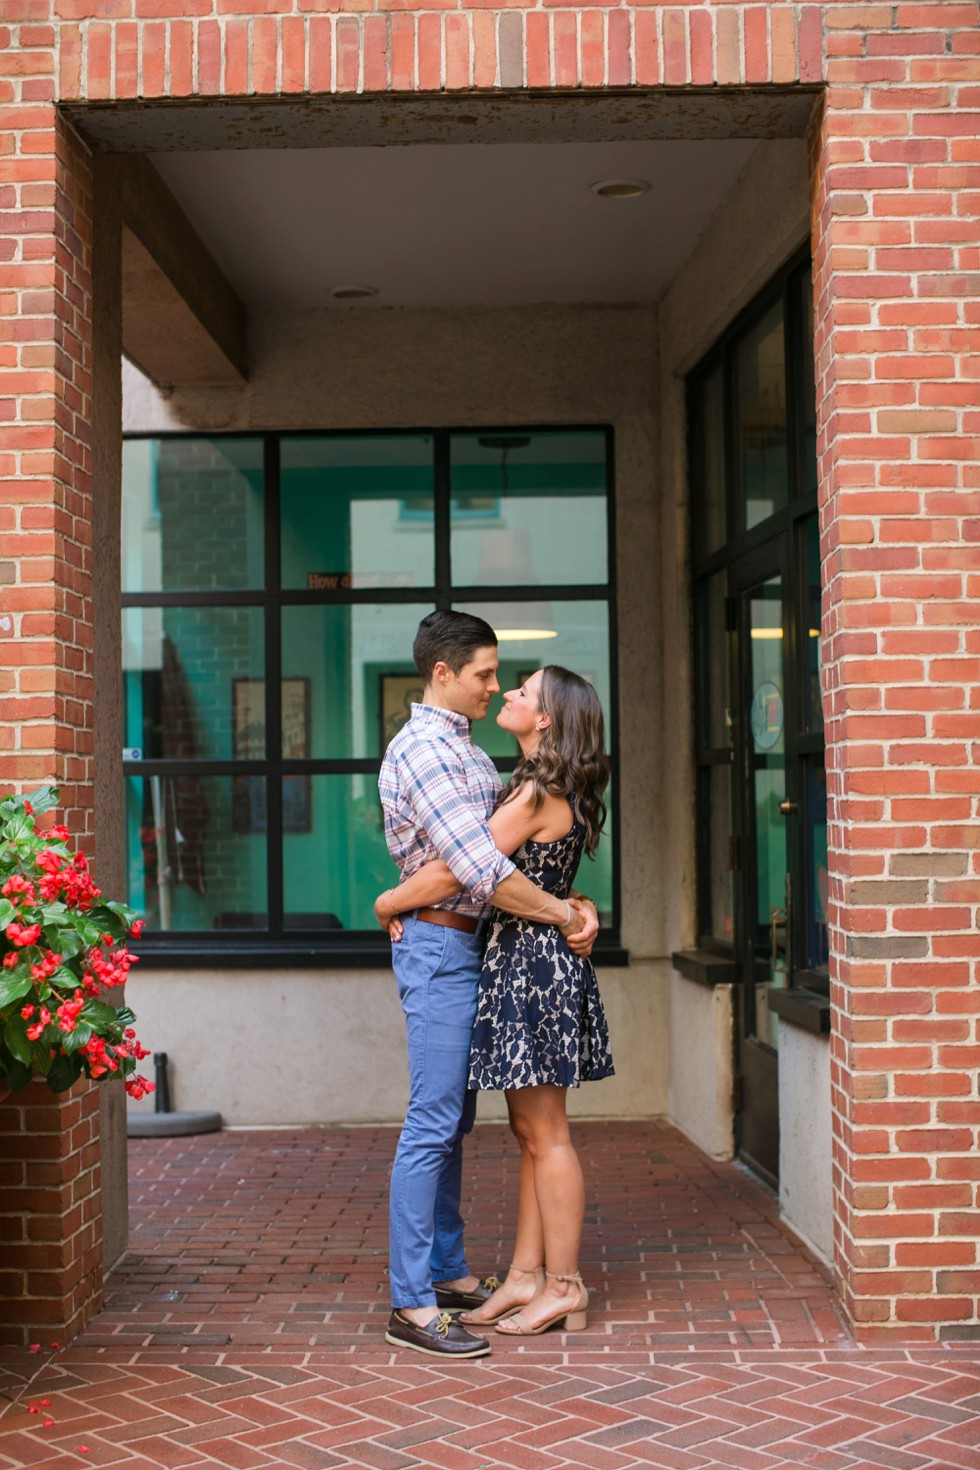 Brick building with plaid mens shirt and navy lace dress engagement outfits